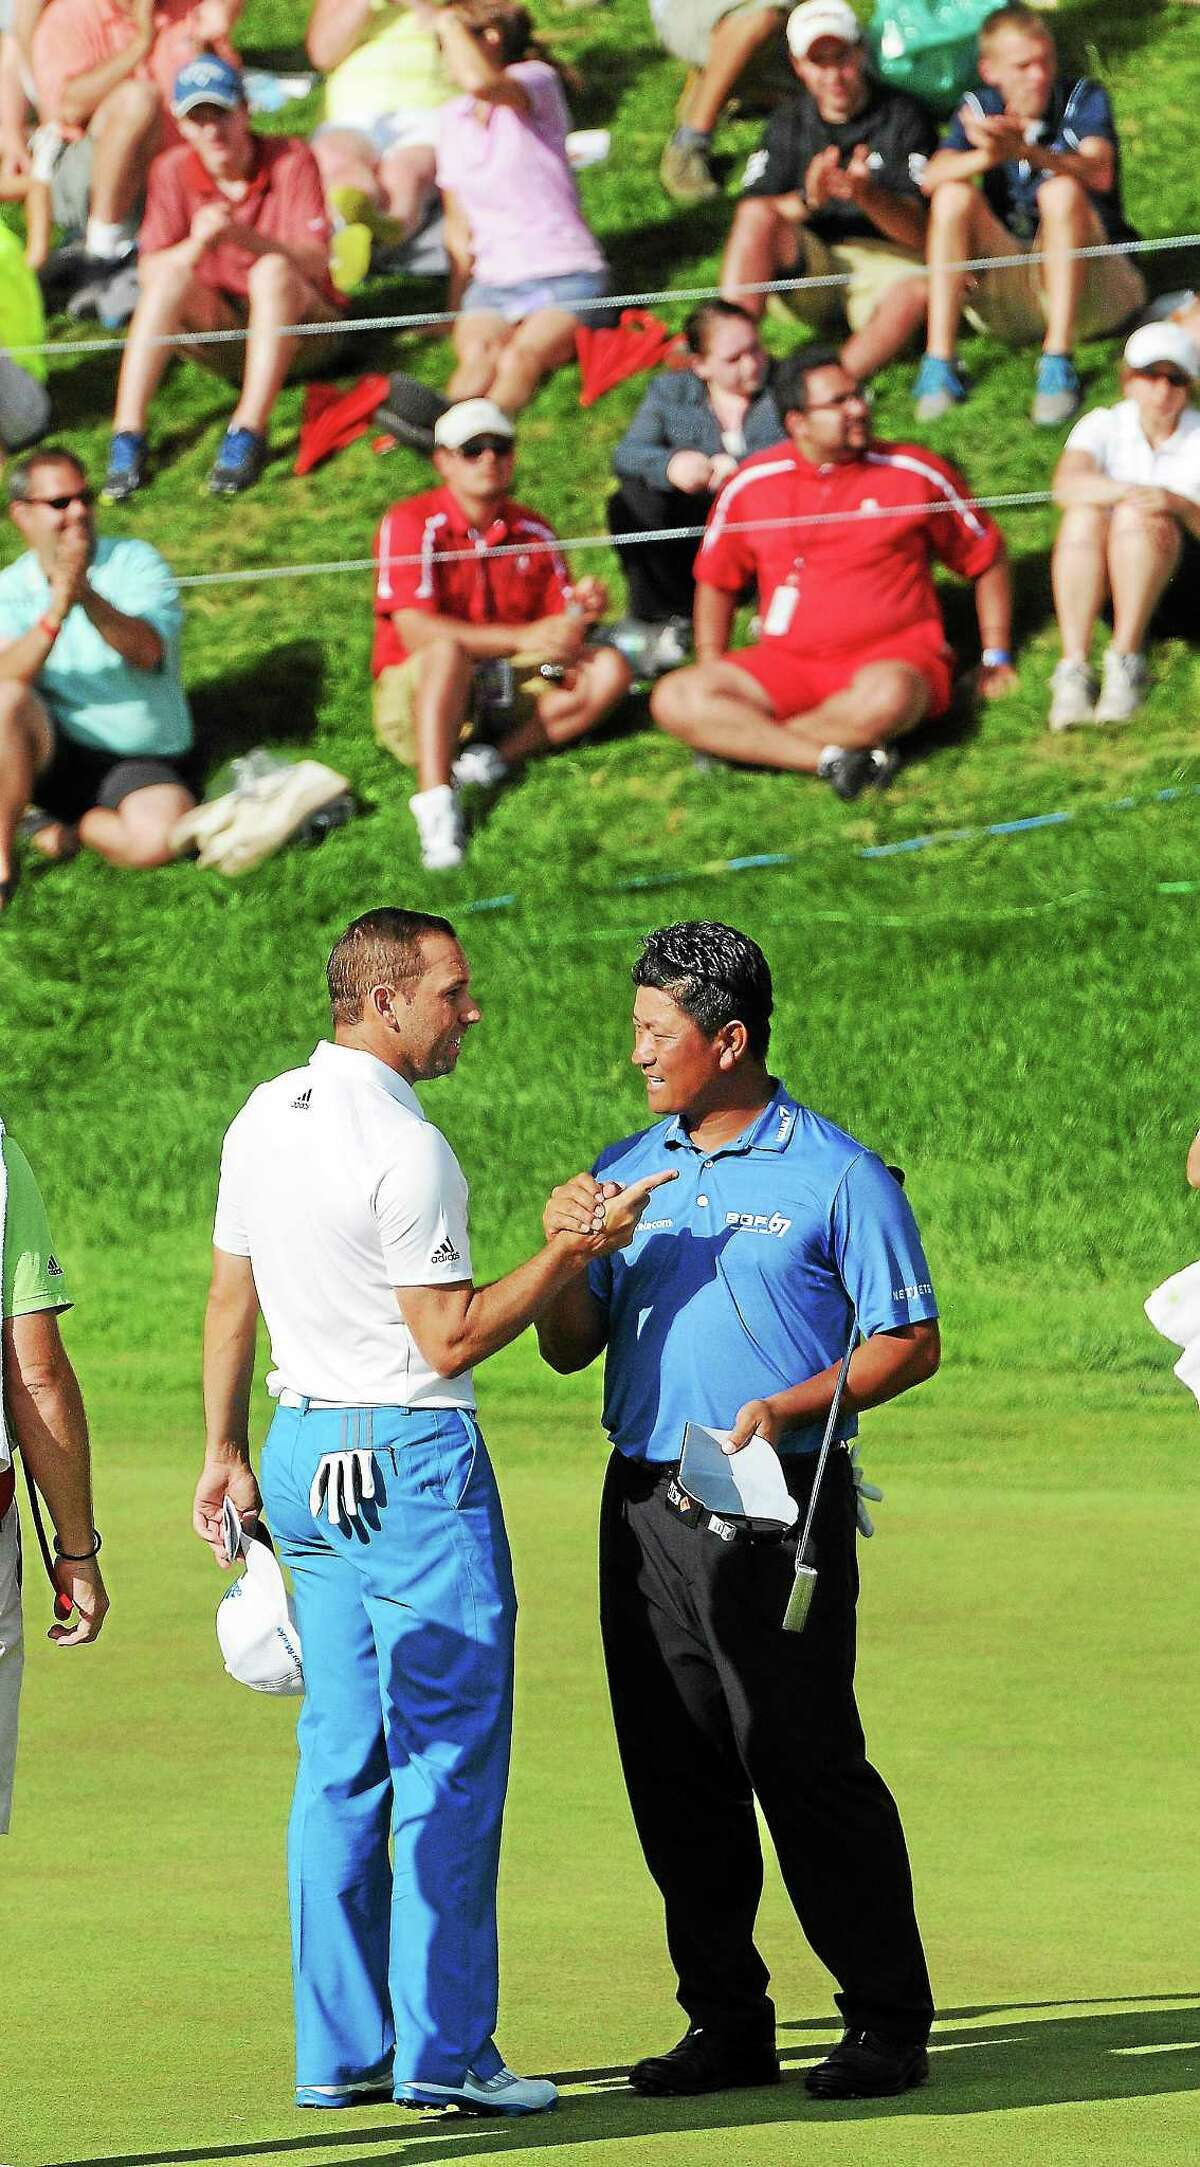 Sergio Garcia, left, and K.J. Choi shake hands after both finishing 14-under and tied for second at the Travelers Championship on Sunday at TPC River Highlands in Cromwell.